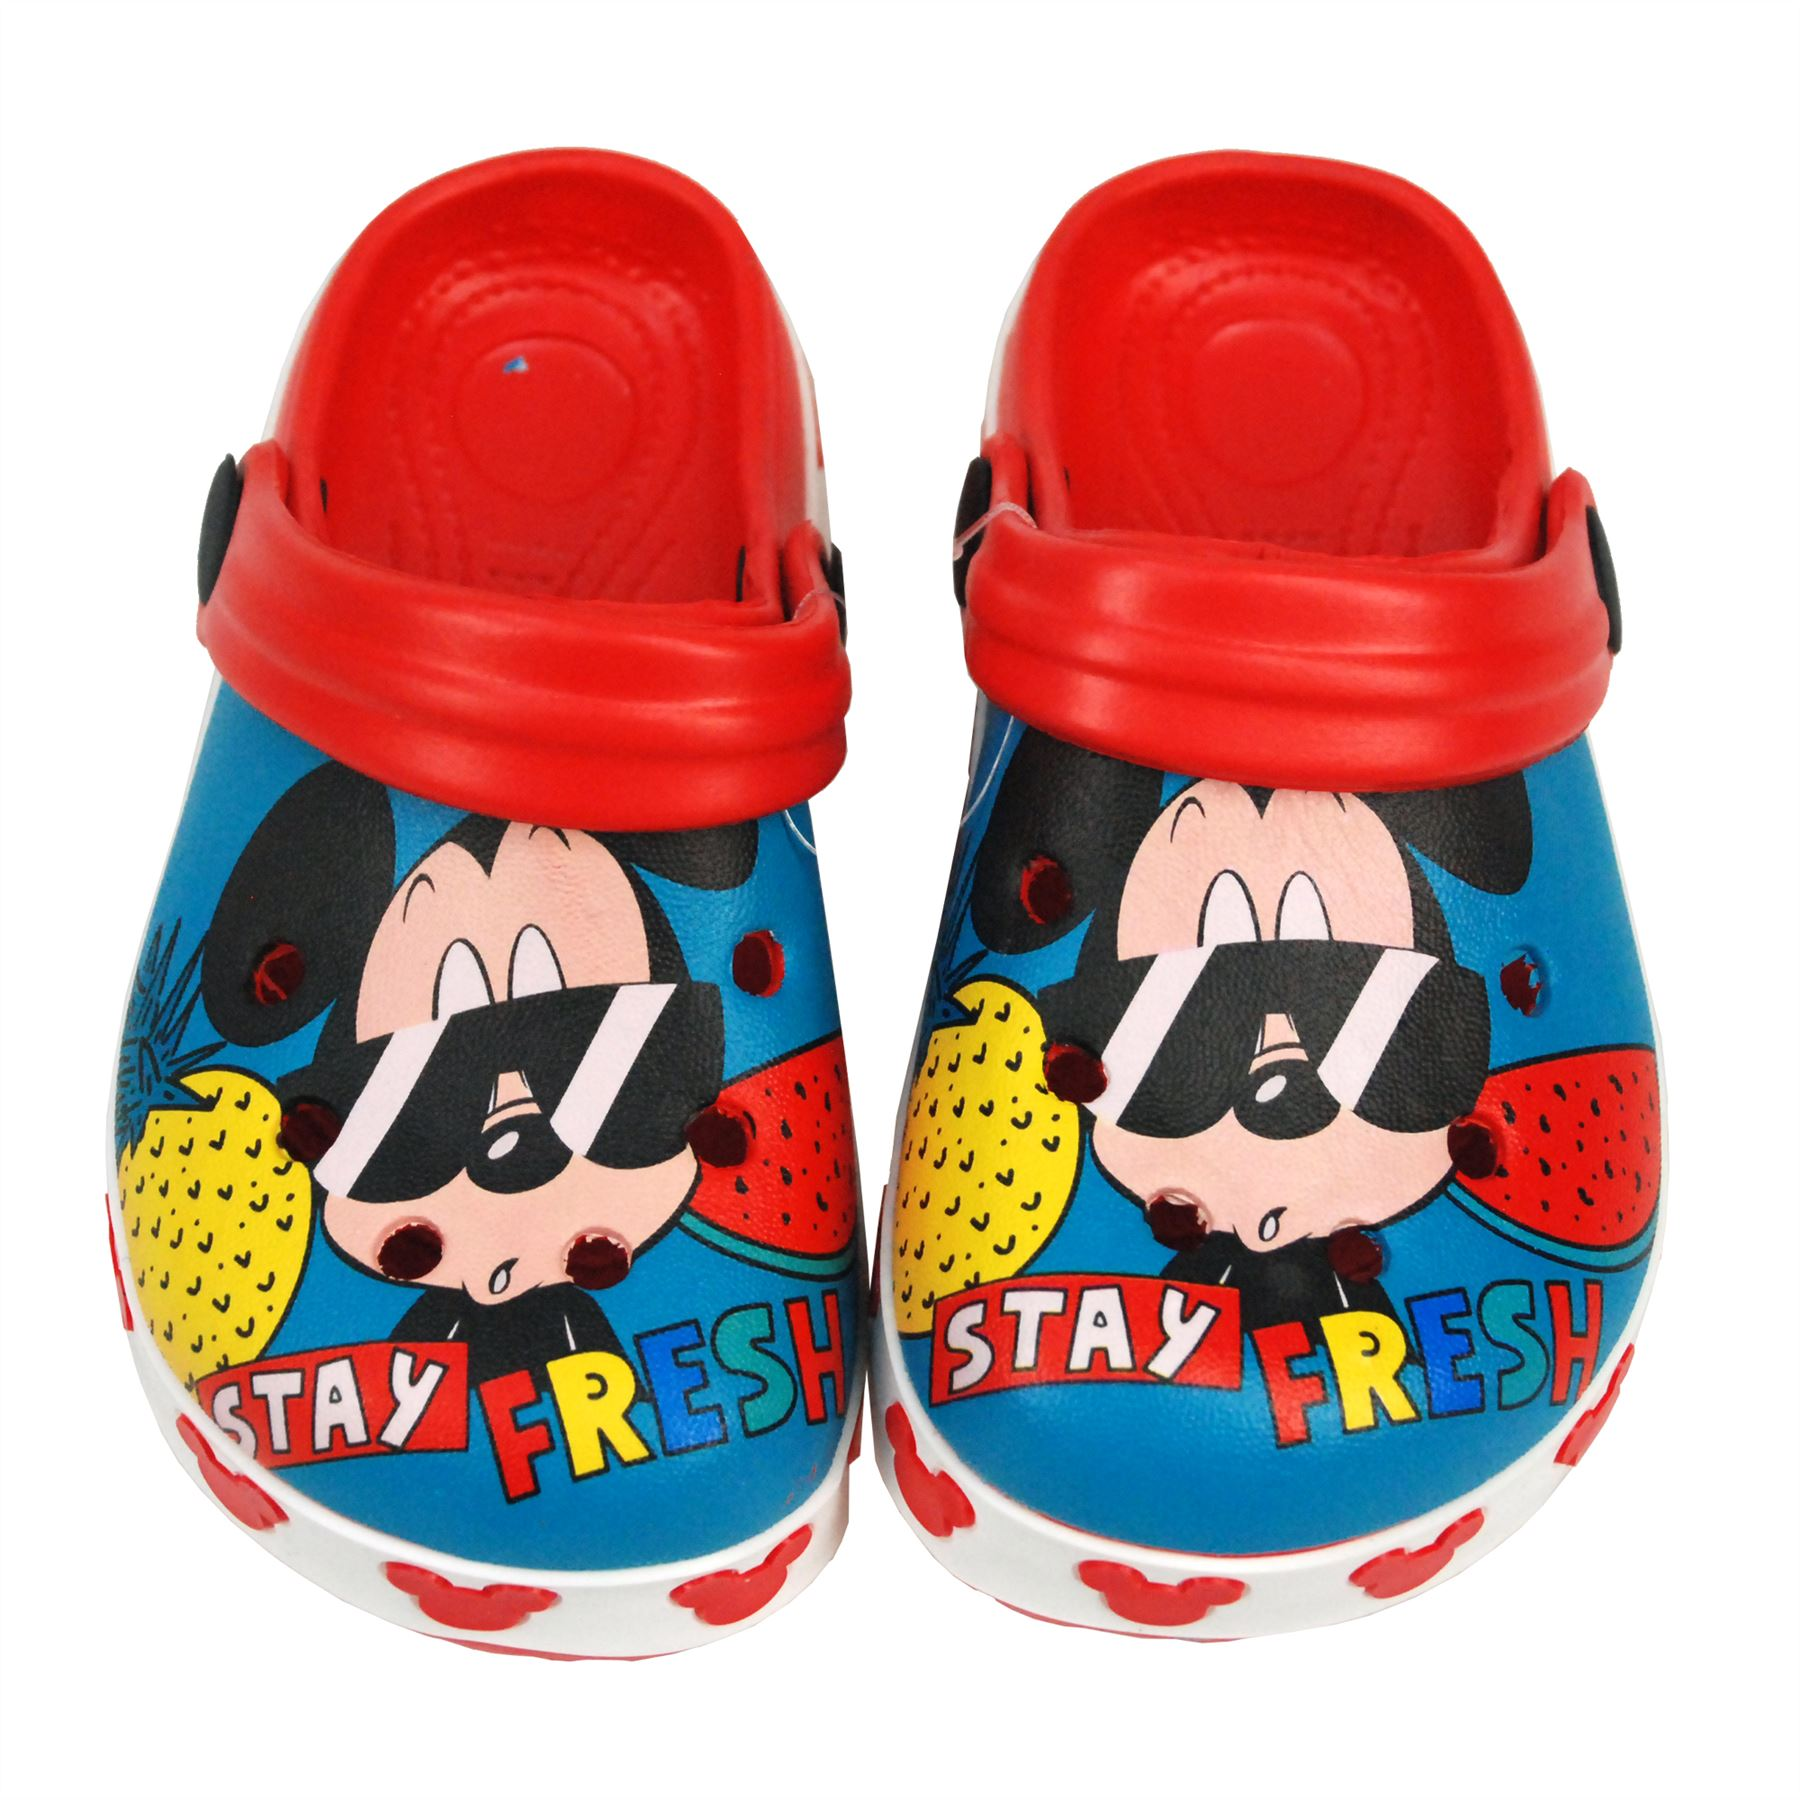 Disney Mickey Mouse Kids Sandals Pool Beach Slippers Shoes UK Sizes